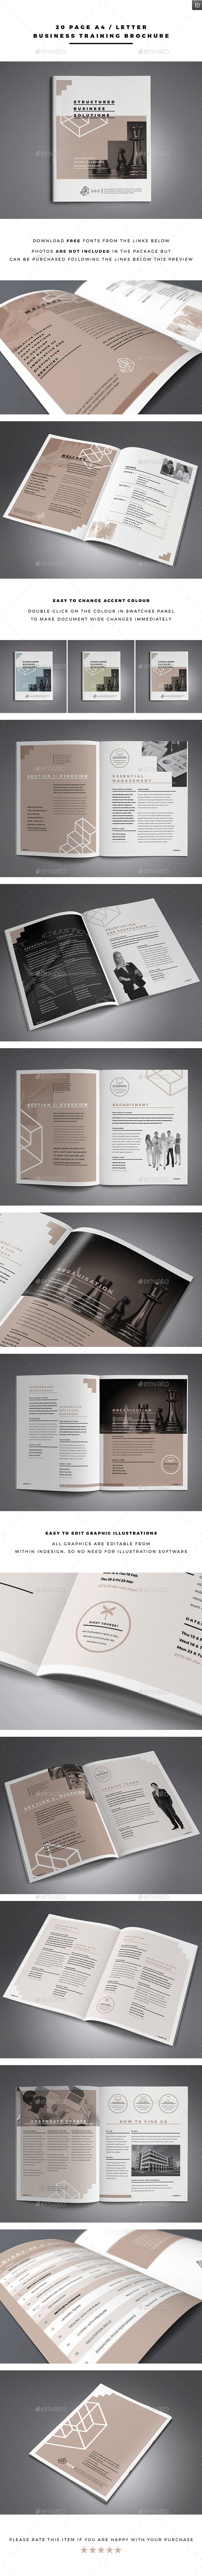 GraphicRiver Business Training Brochure 11258367